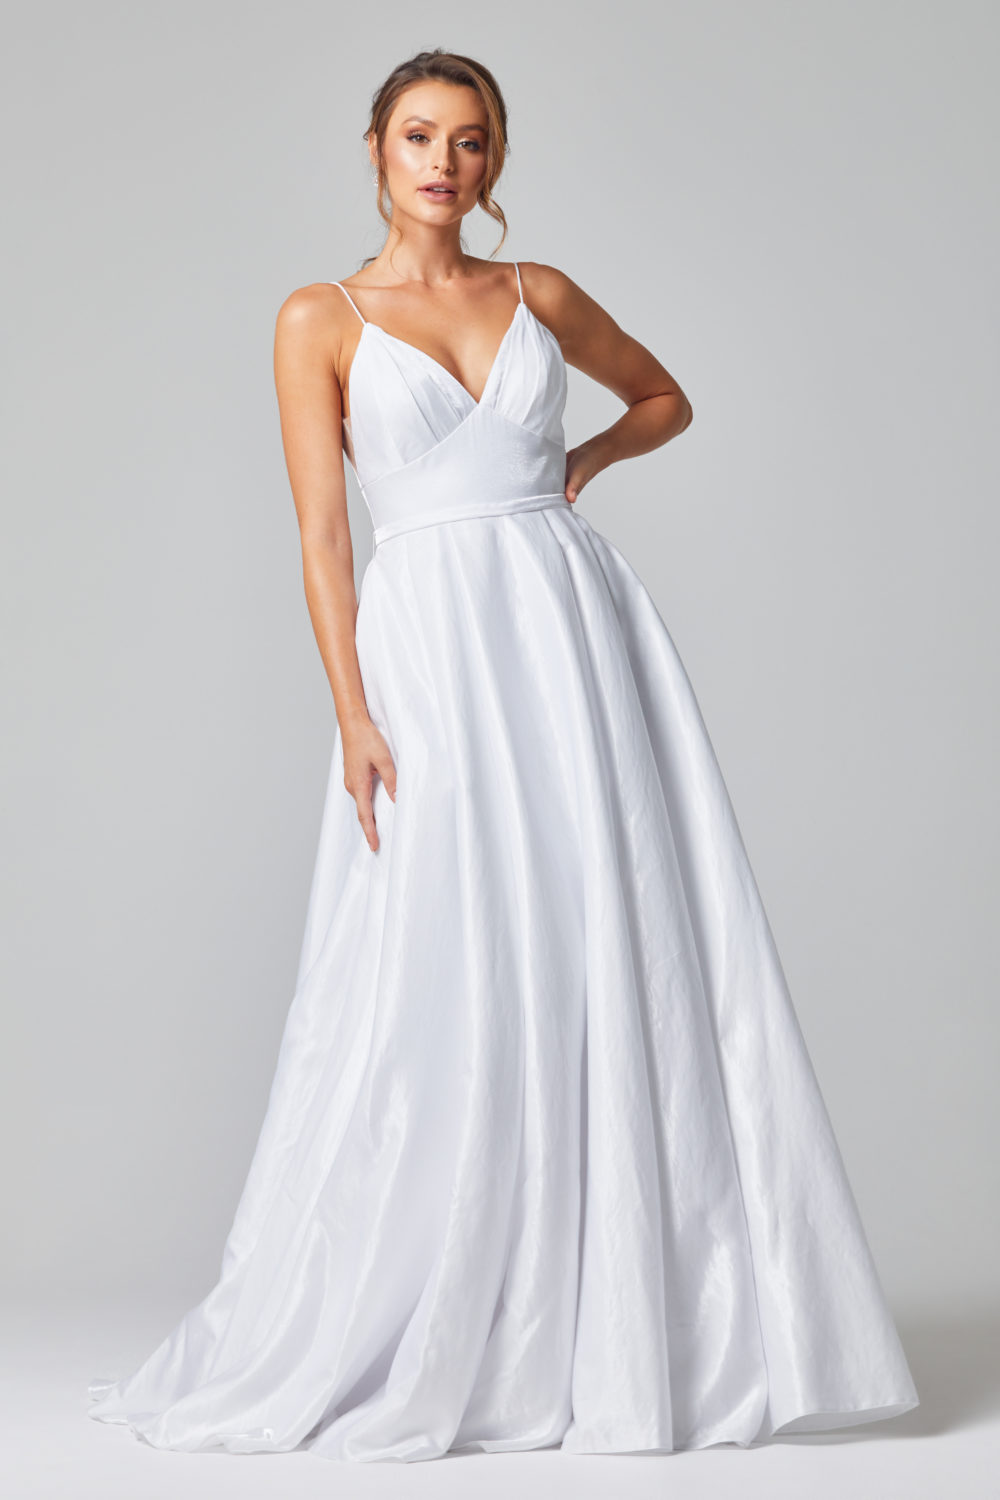 LEIA WEDDING DRESS FRONT - PURE WHITE - PO834